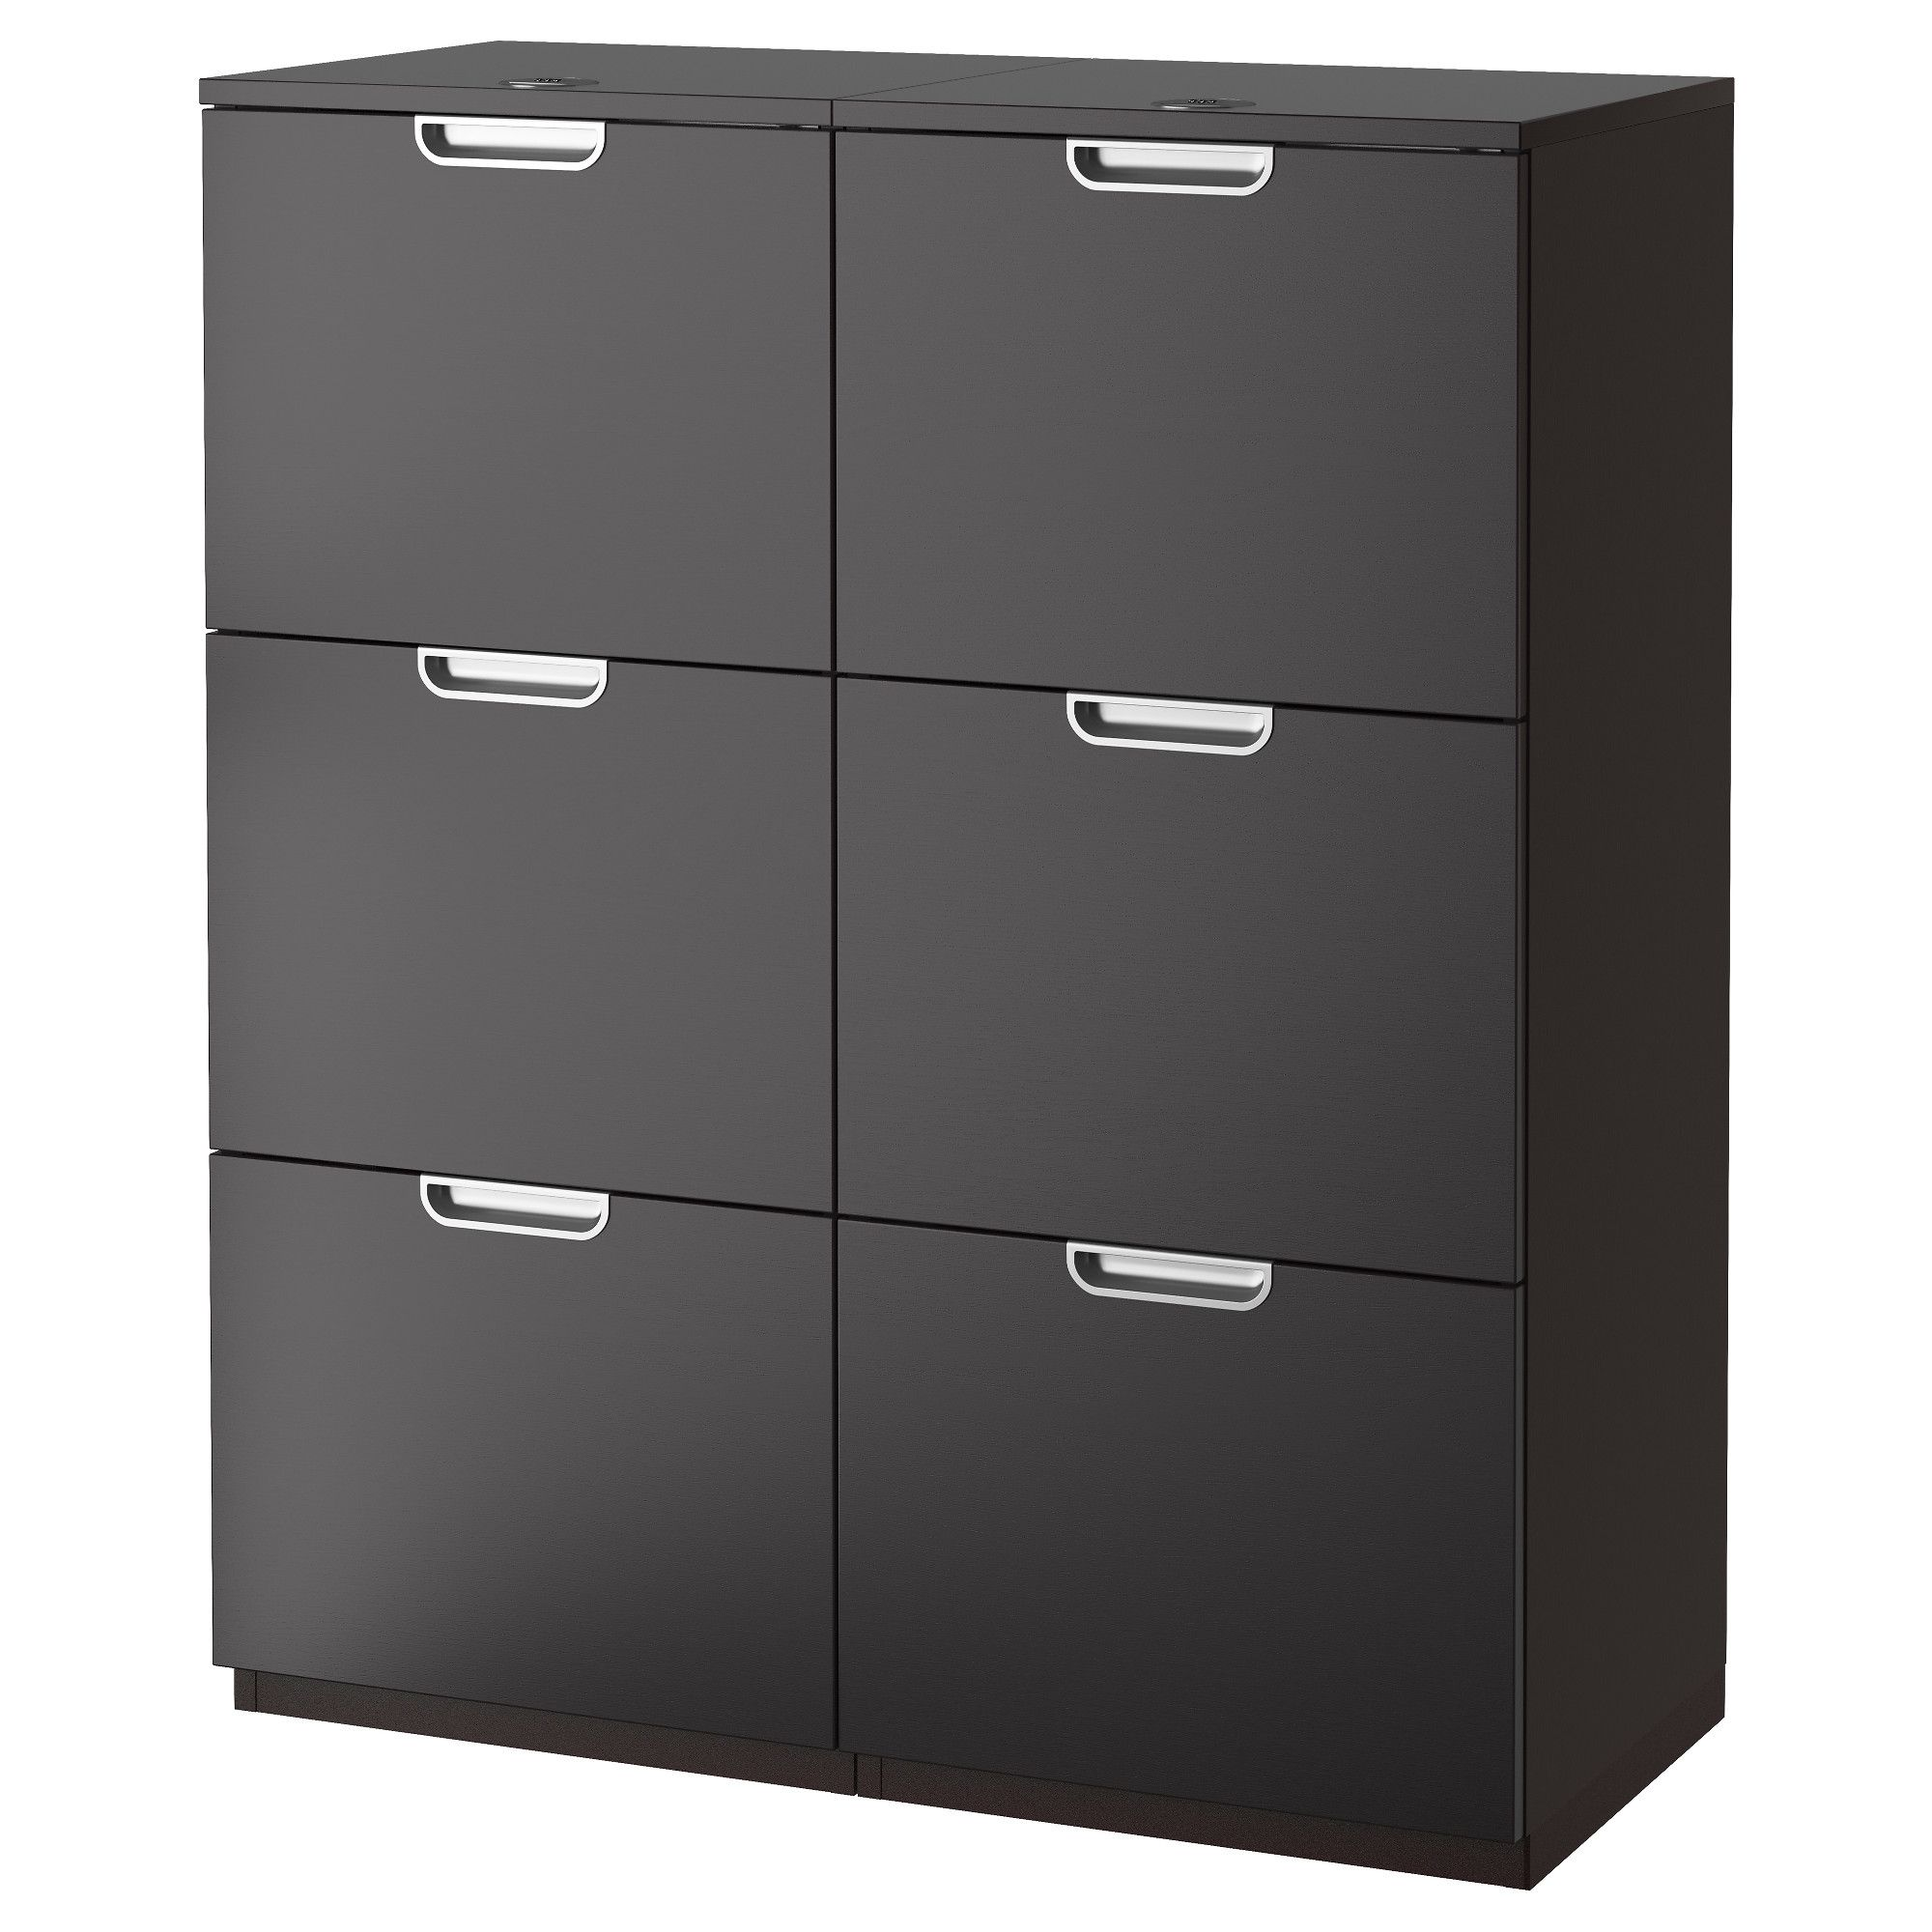 Ikea galant storage combination with filing black brown 10 year limited